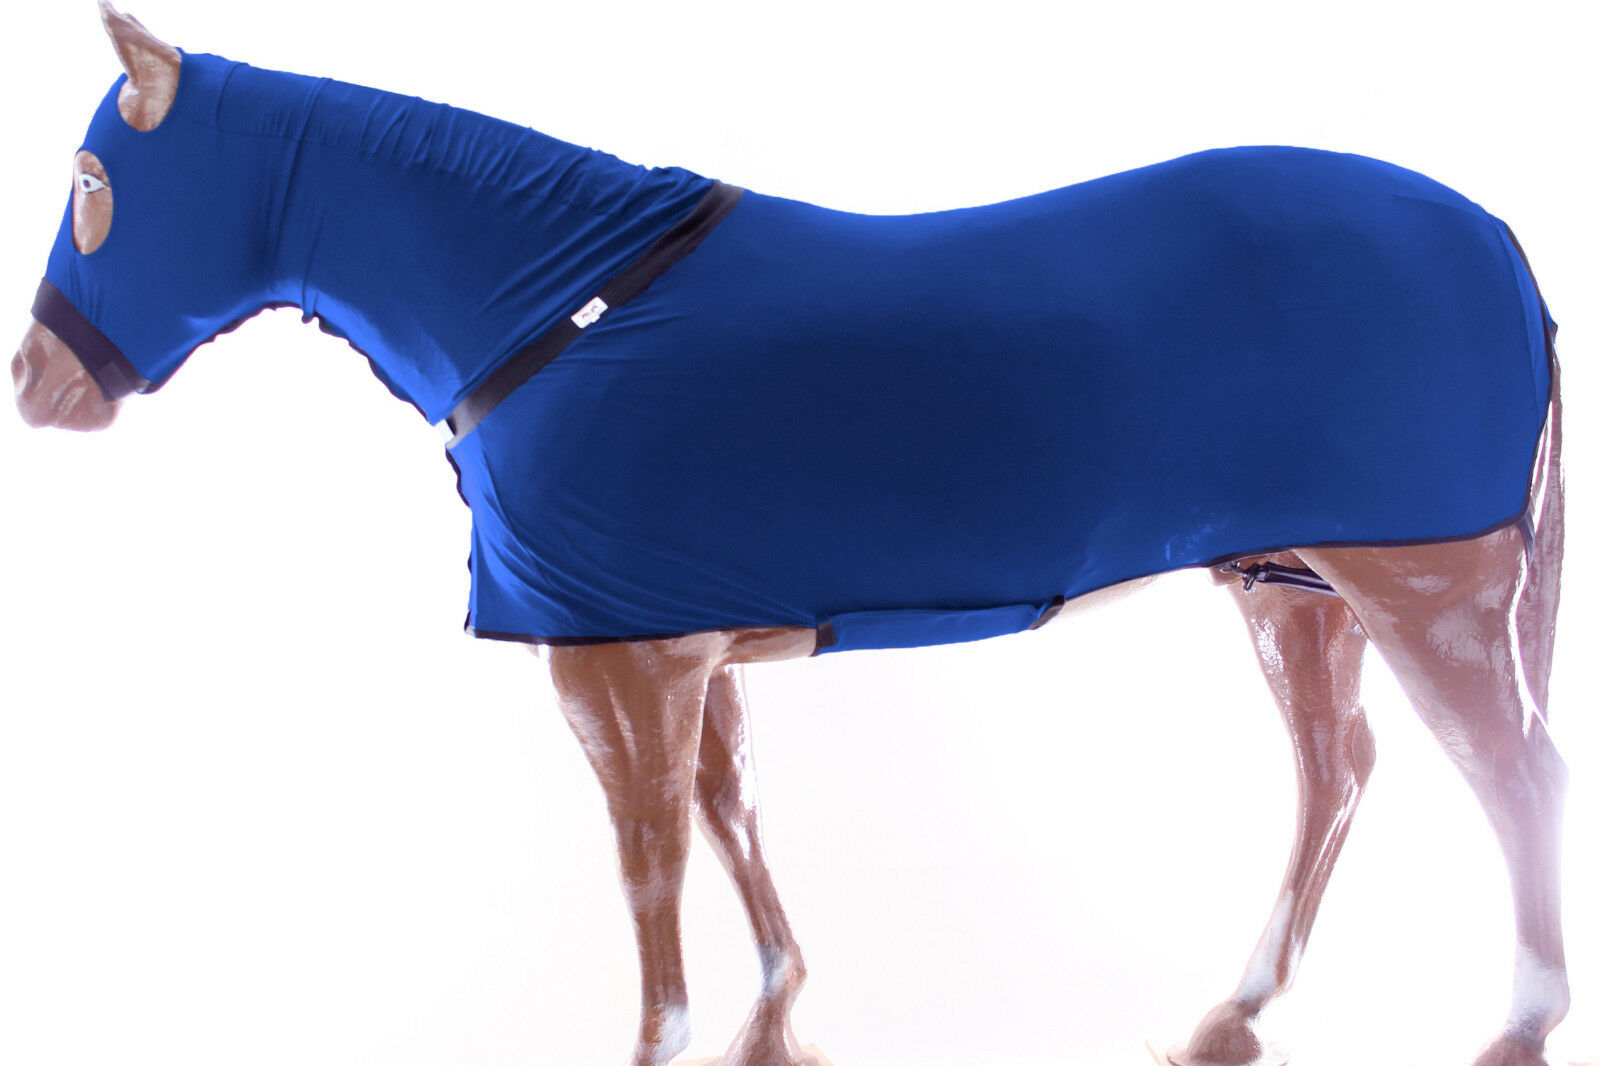 Horse Full All Body Zippered Lycra  Slinky Stretch Fabric Suit Navy X-Large  cost-effective